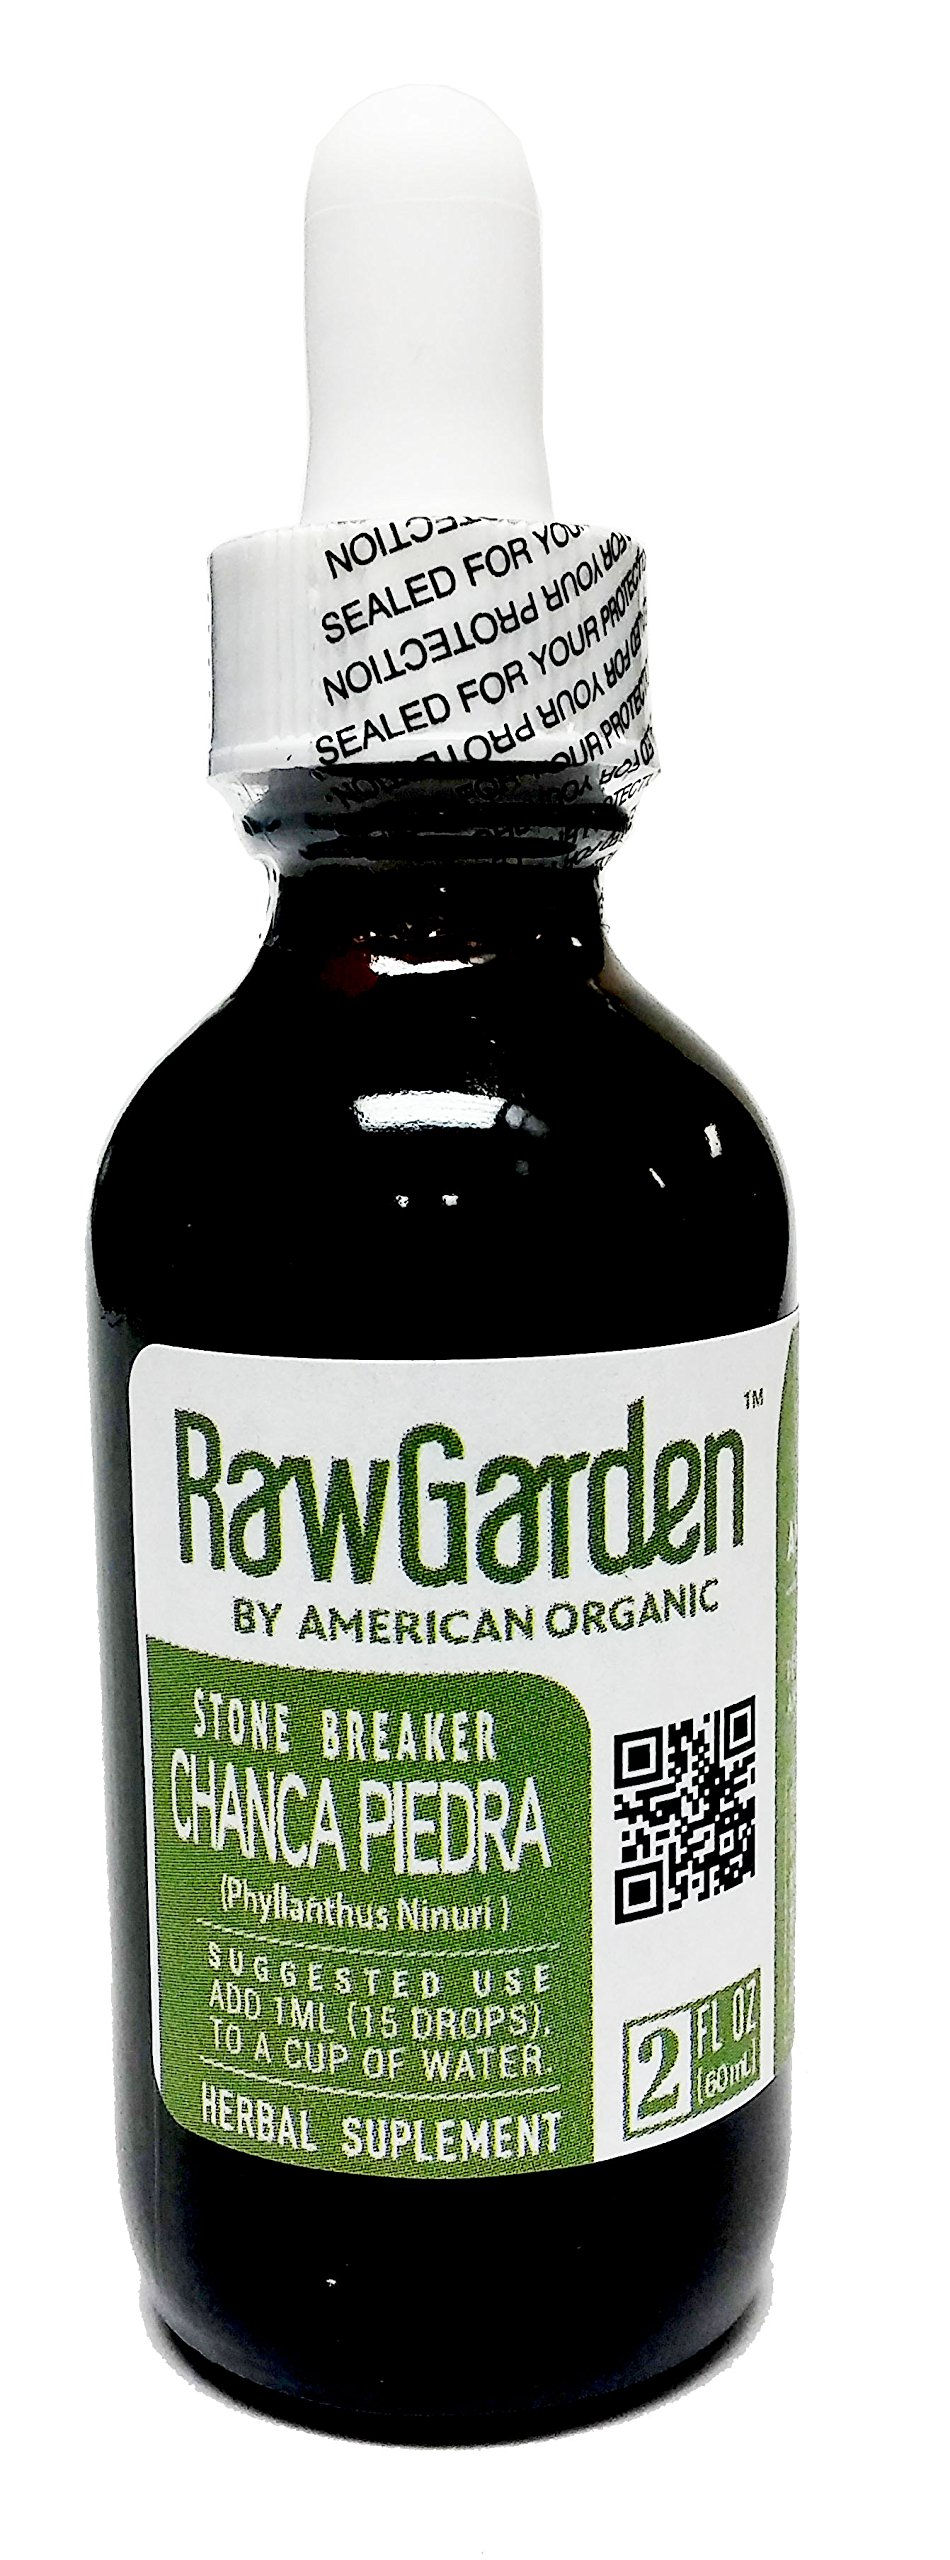 Raw Garden Chanca Piedra 2 oz Extract (stone Breaker) liquid Glass Amber Bottle.